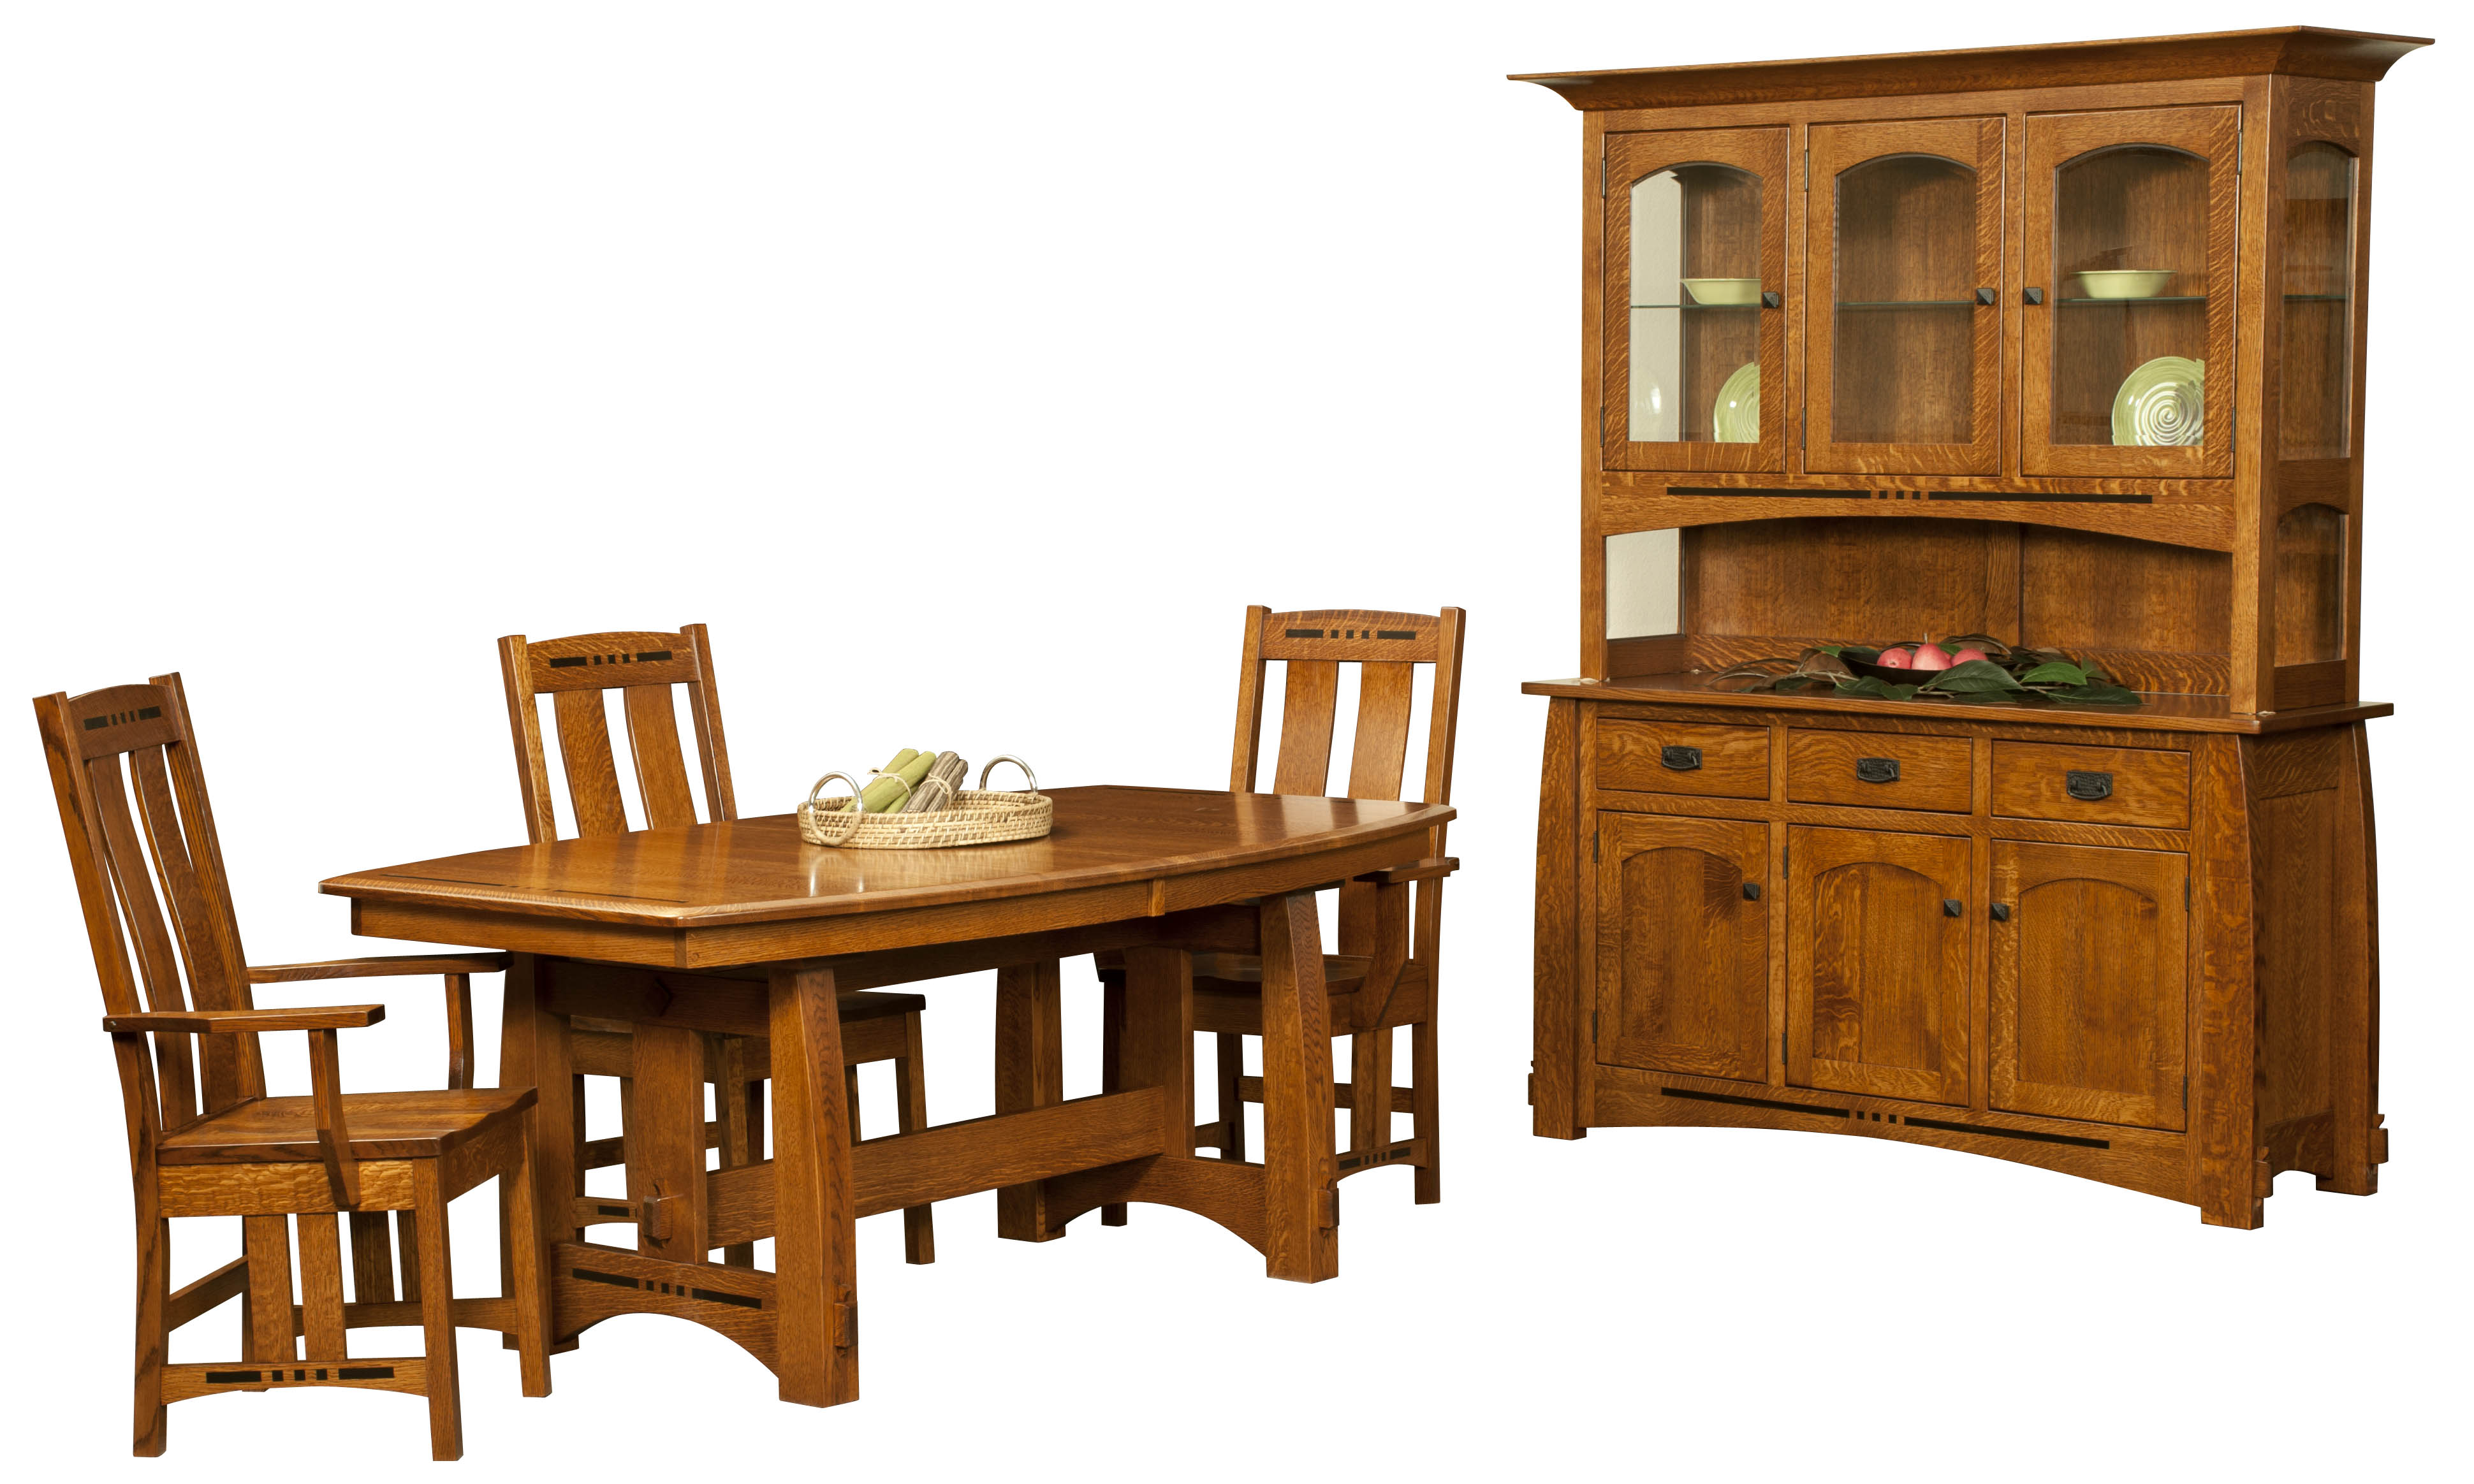 Furniture Images Tips To Care For Your Wooden Furniture In Rainy   Furniture  PNG